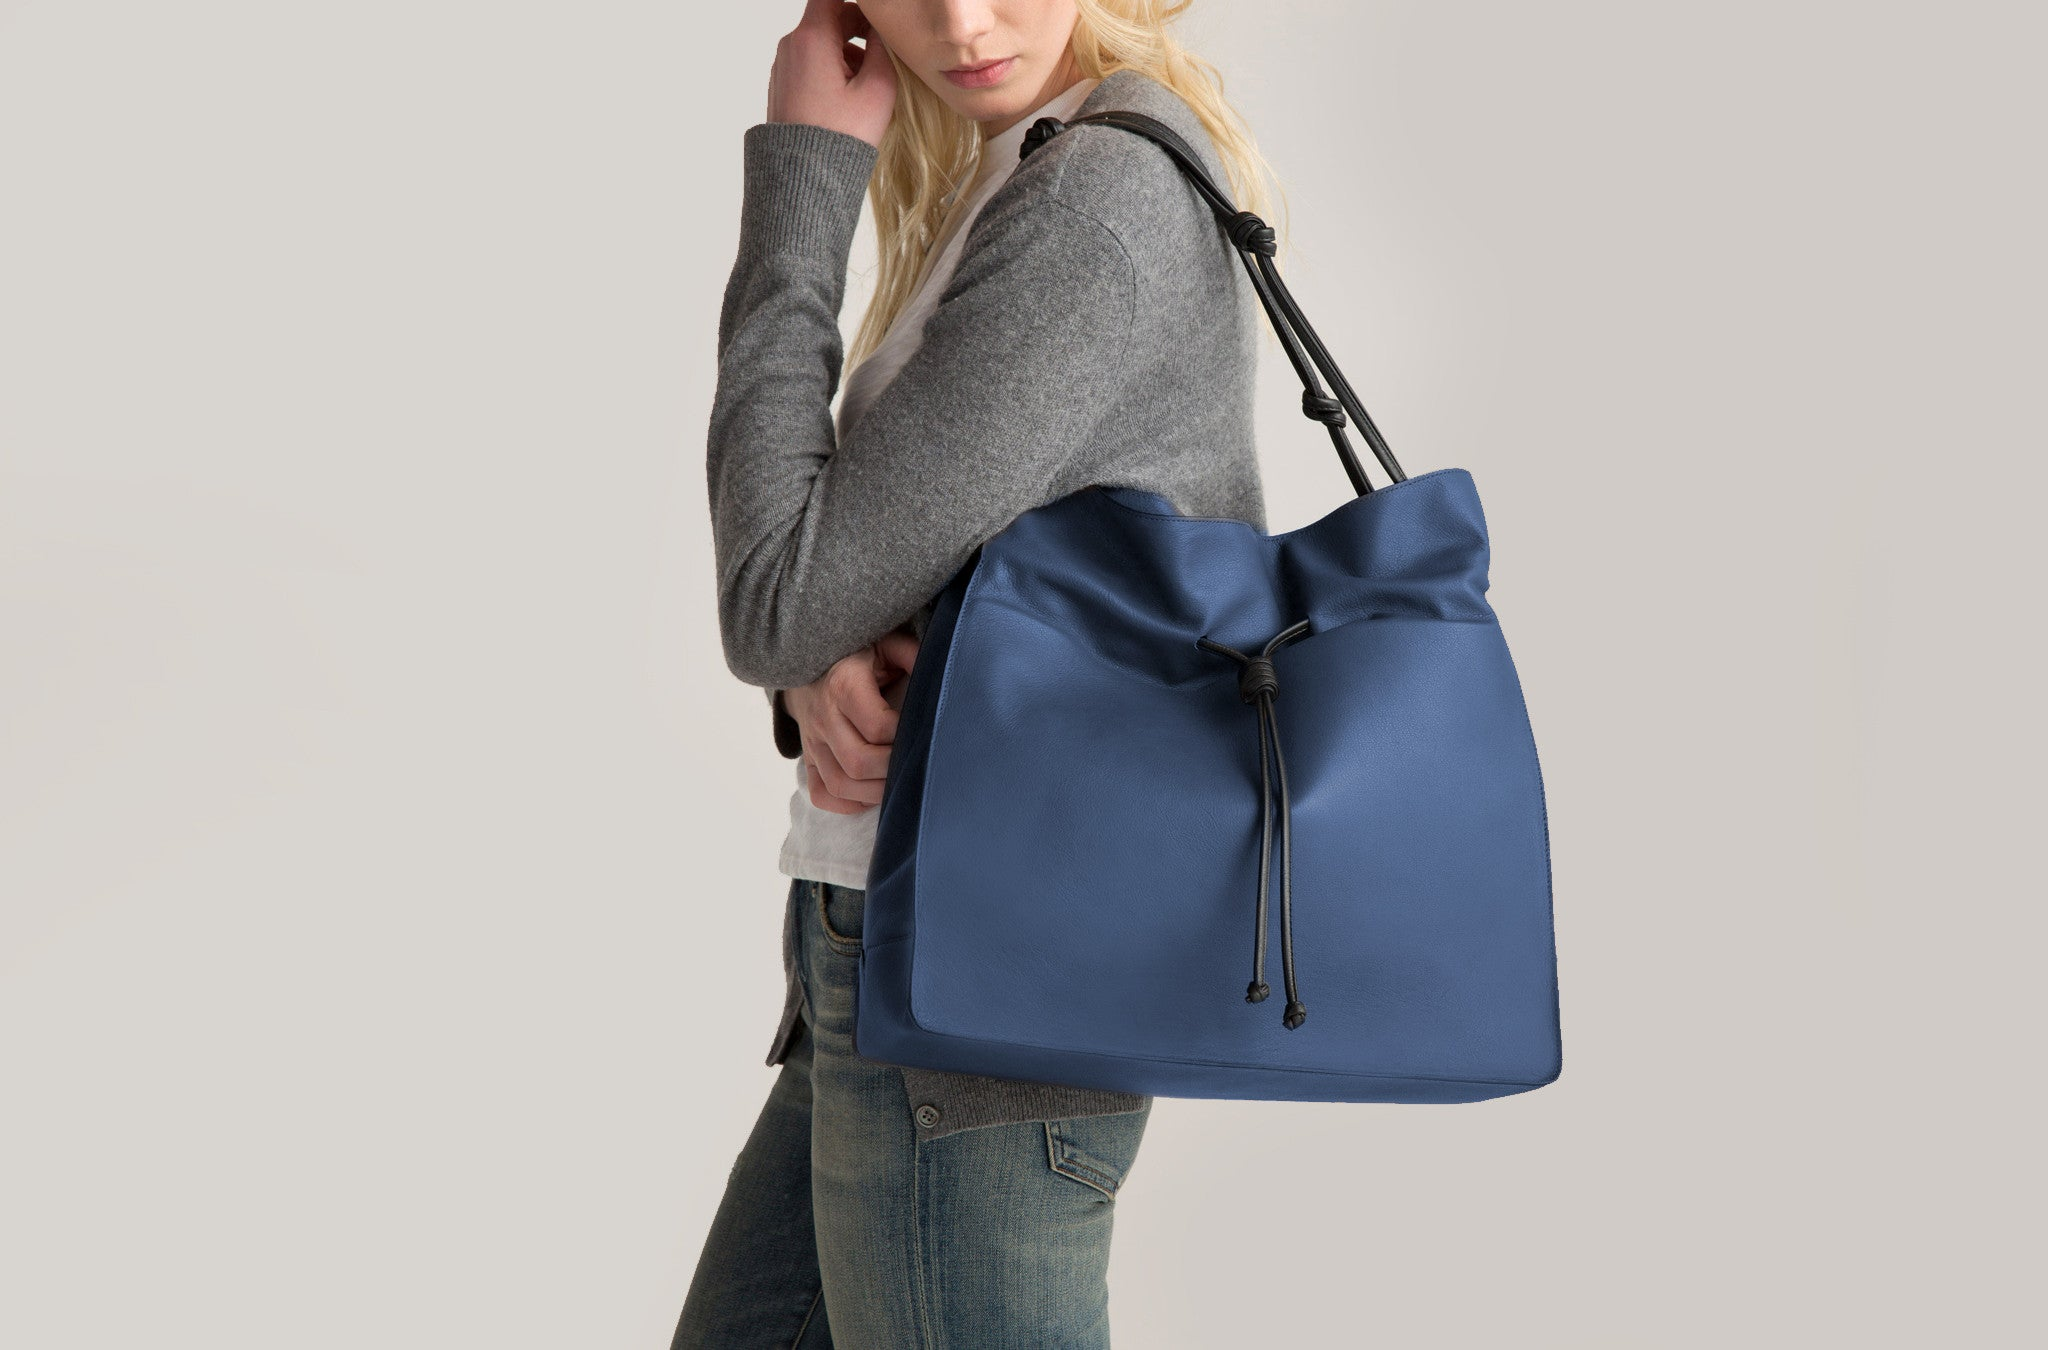 The Large Shopper in Technik-Leather in Denim and Black